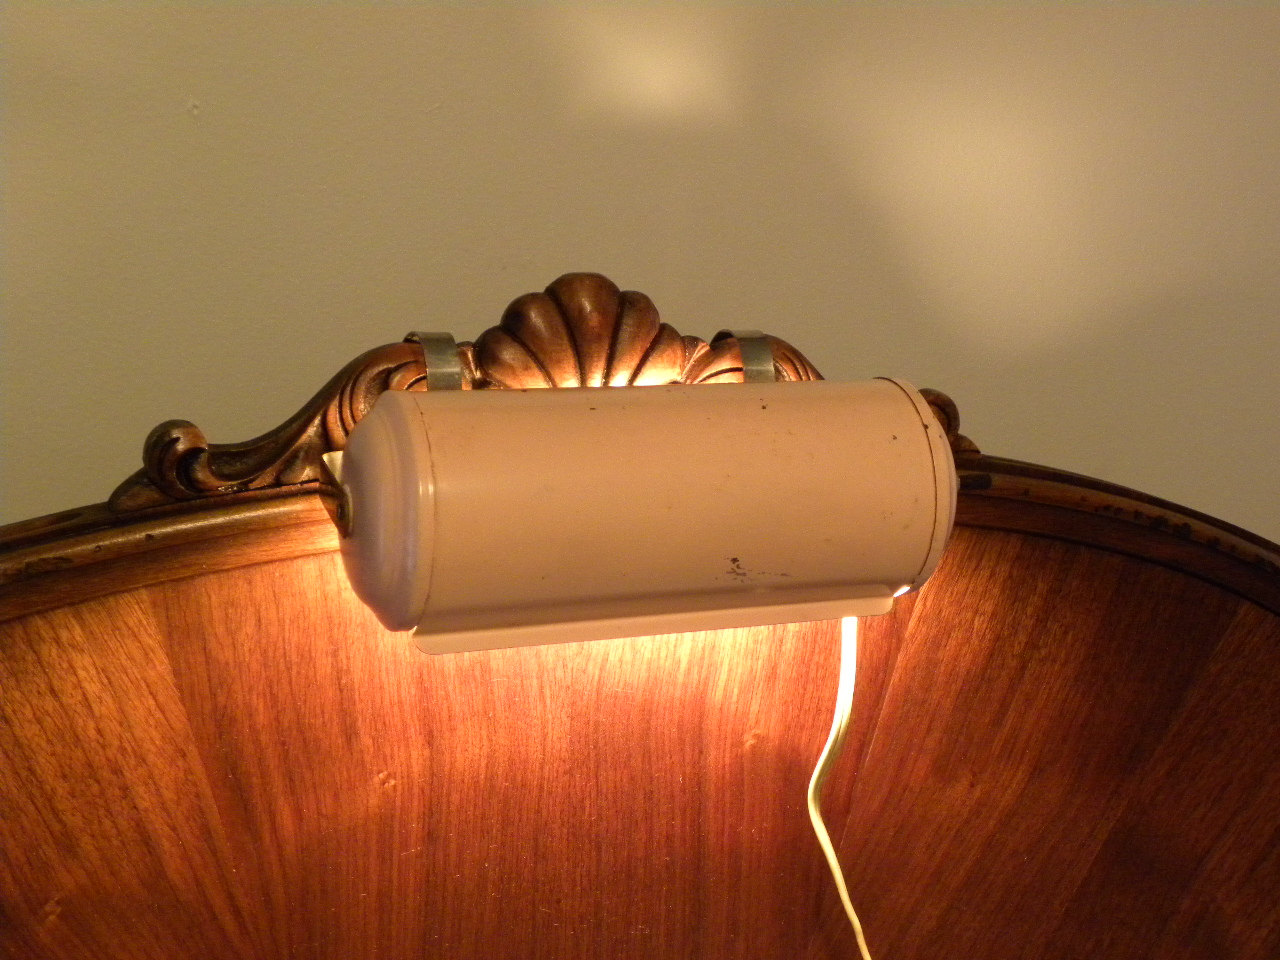 Ropriate Lighting Means Enjoyable Reading Versatile Lamps For Bed